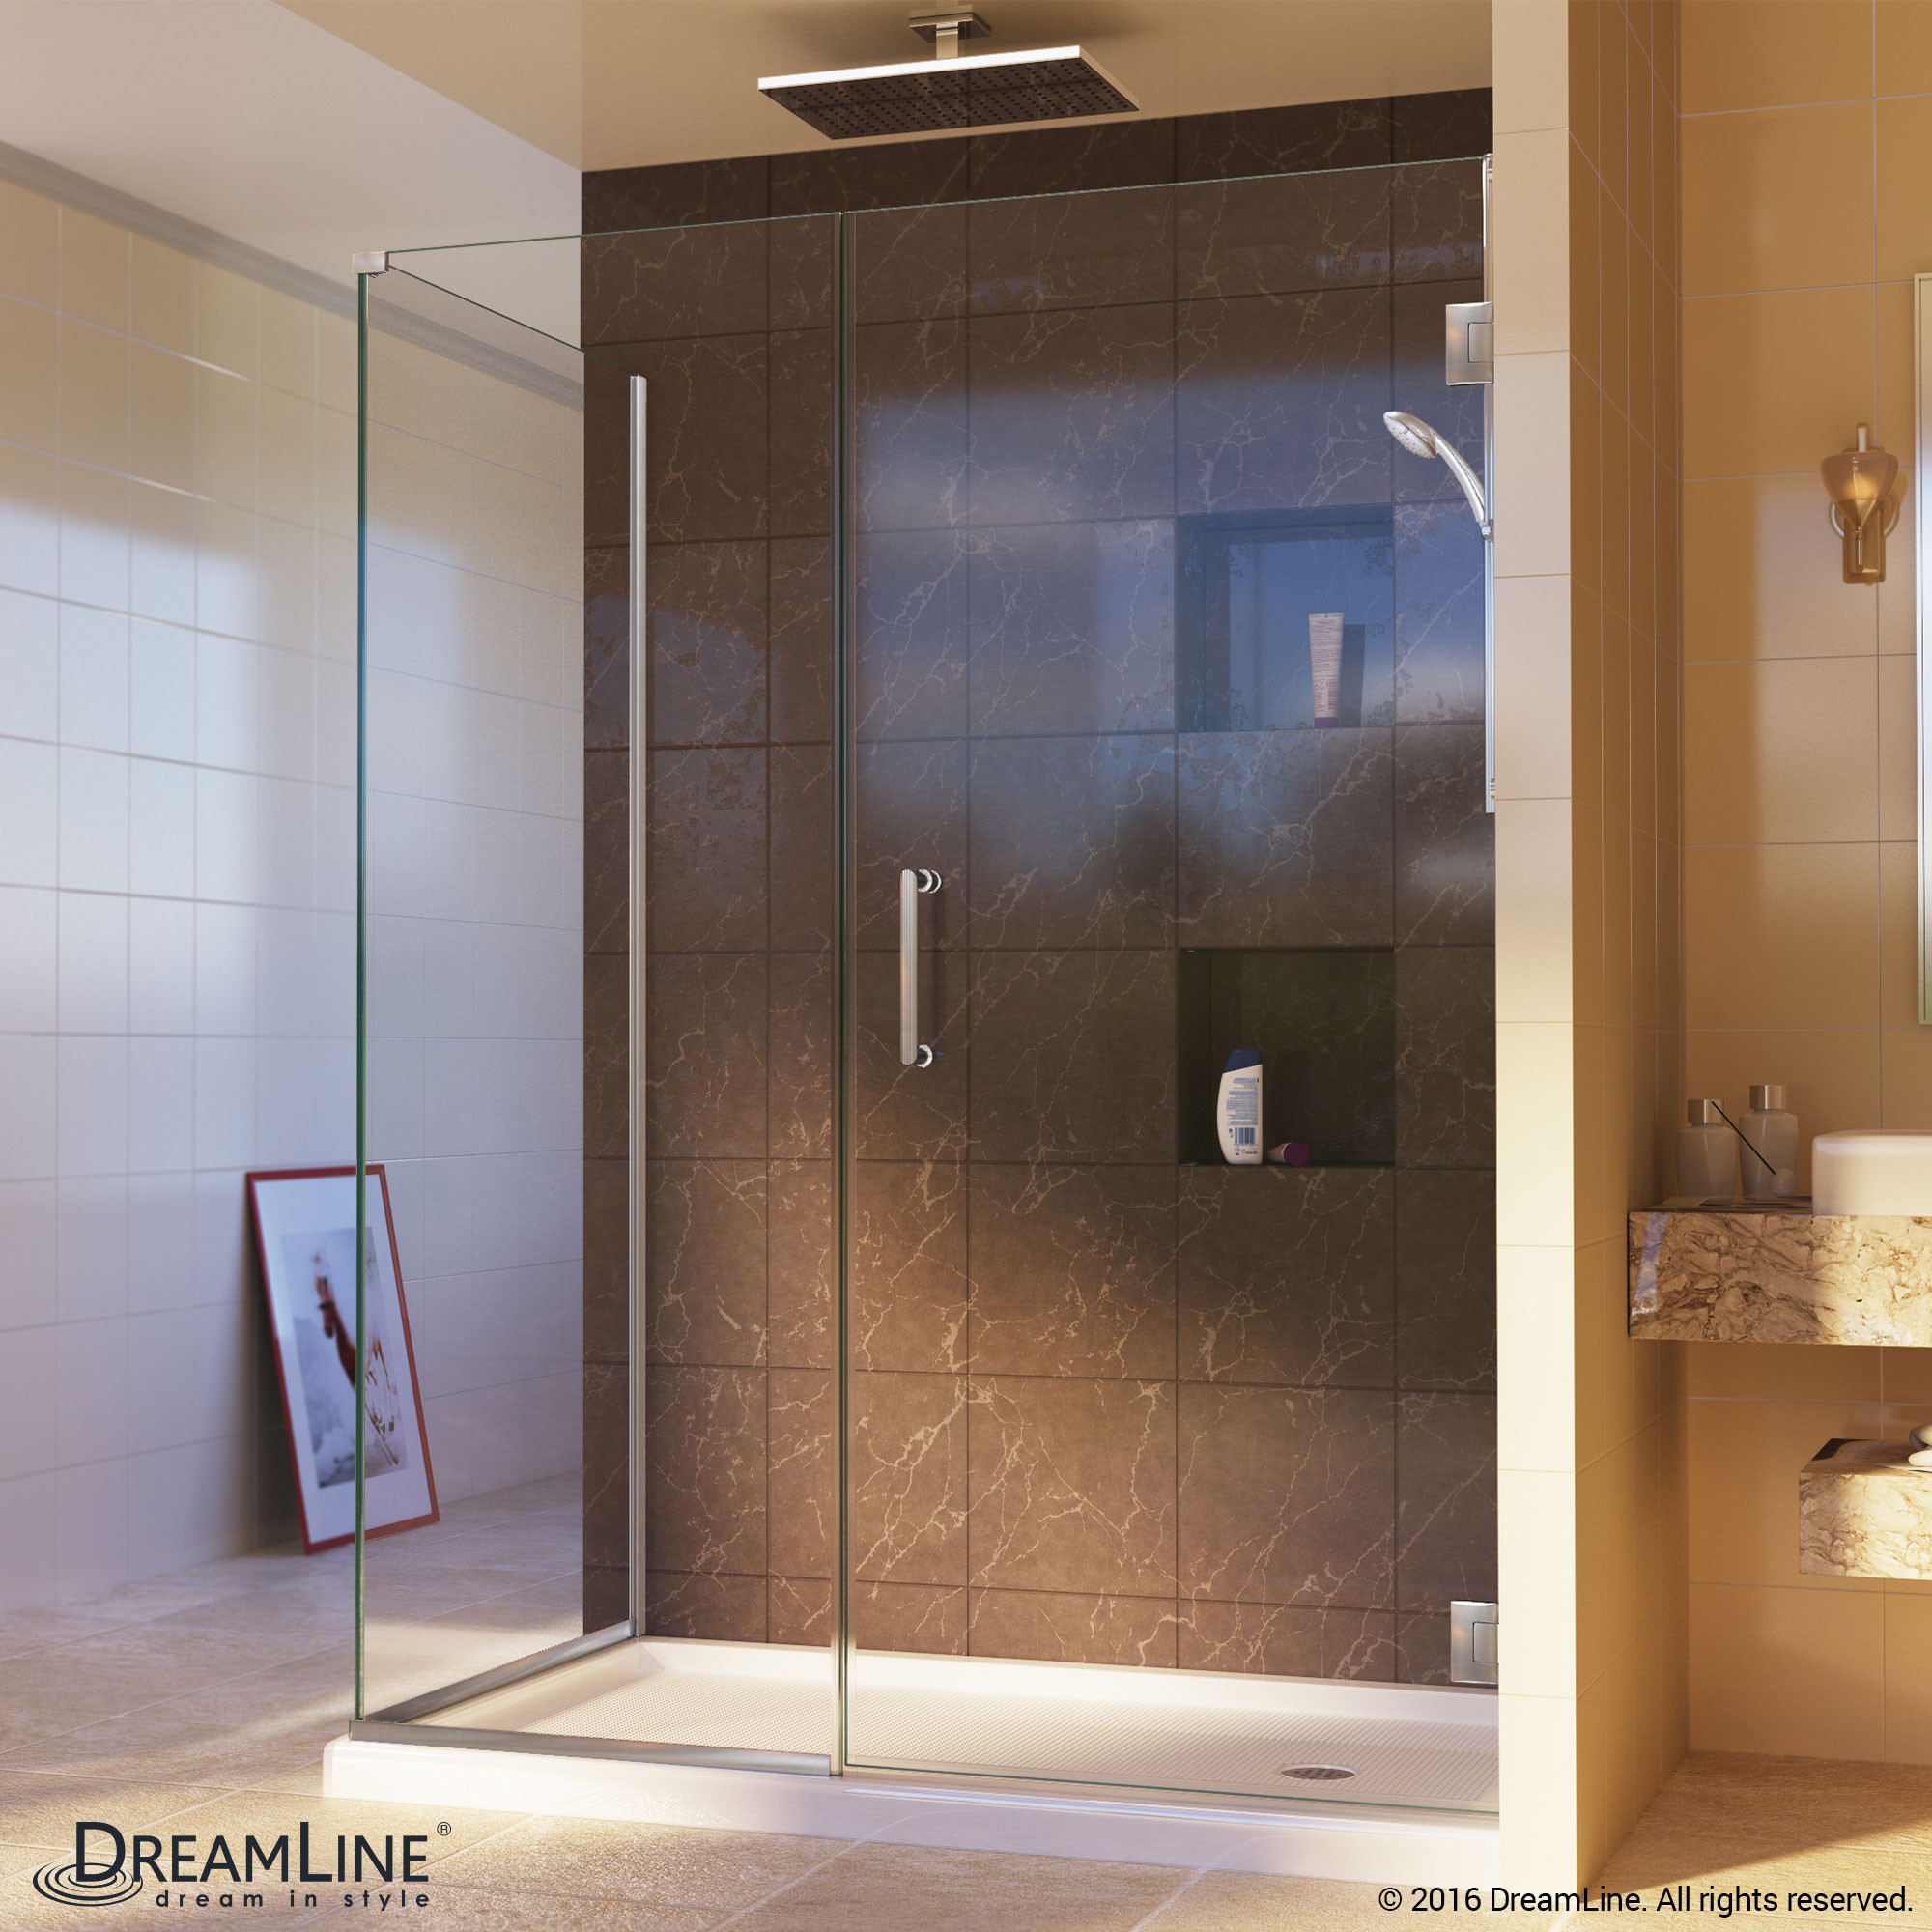 DreamLine SHEN-24330300-04 Unidoor Plus Hinged Shower Enclosure In Brushed Nickel Finish Hardware